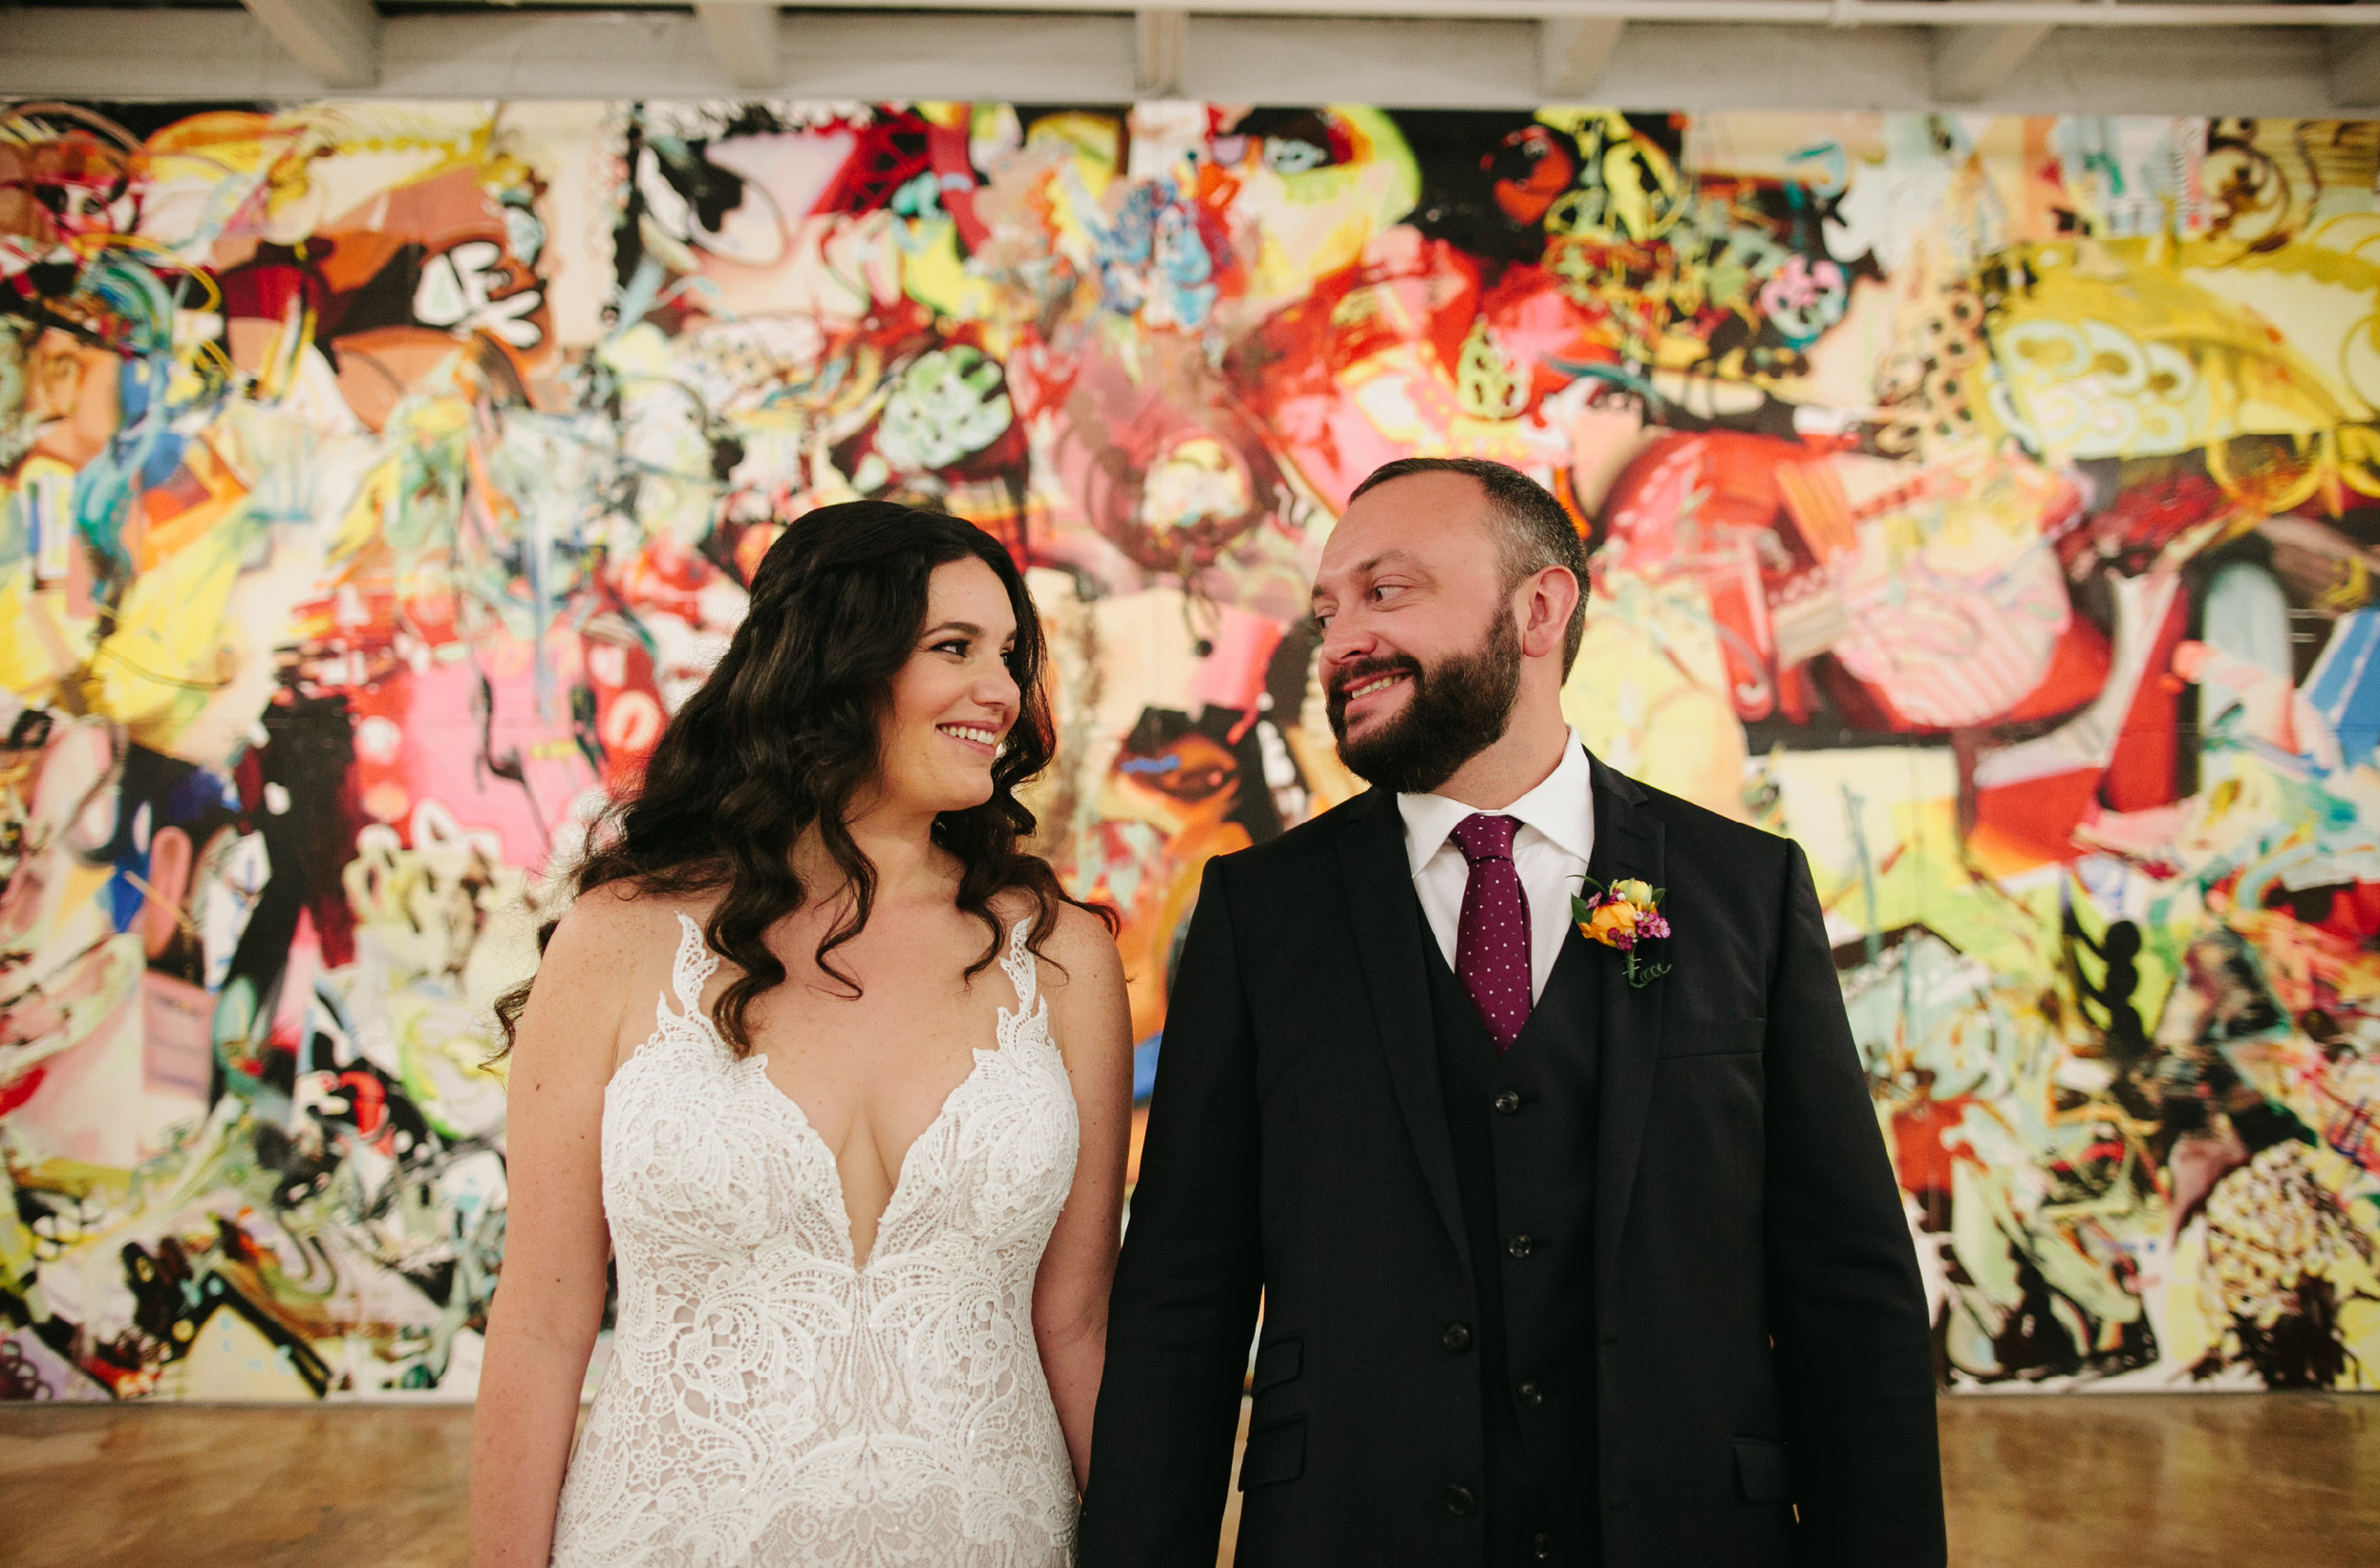 Wynwood Wedding at Rubell Family Collection in Dowtown Miami24.jpg